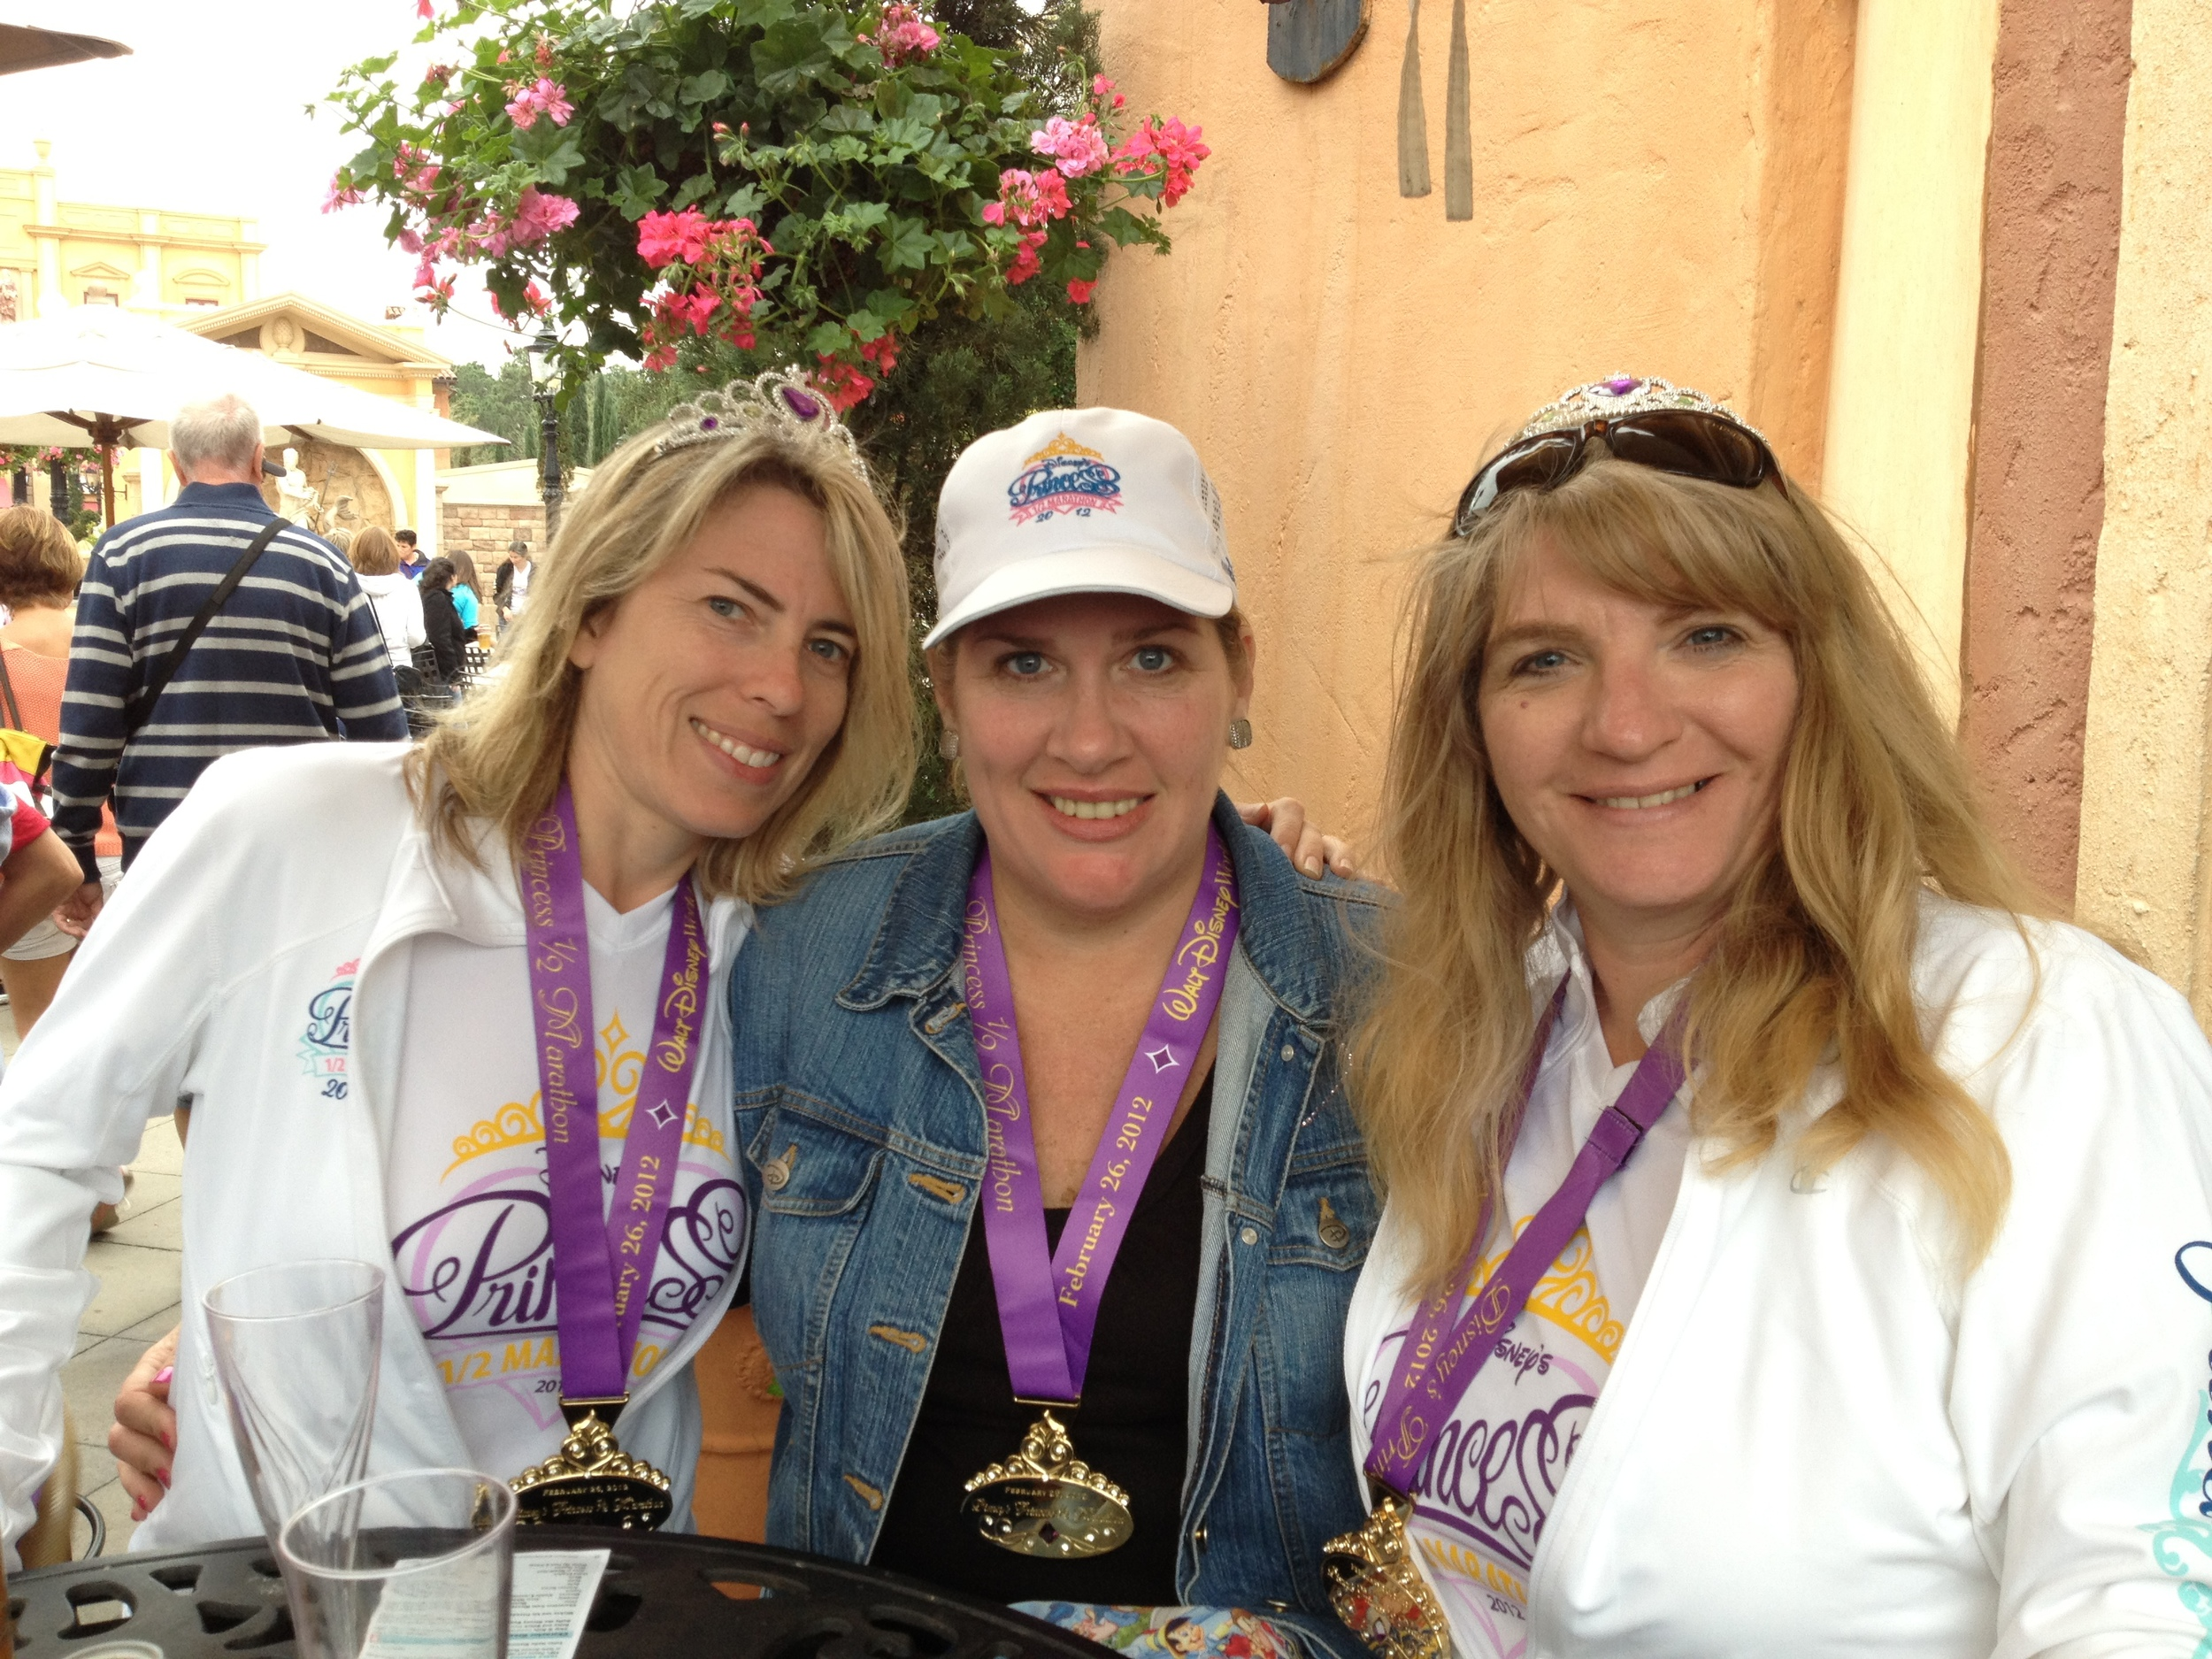 The best part of any race - the post race celebration with amazing friends! Here I am in Epcot with Susie and Diana sharing a toast to our success.